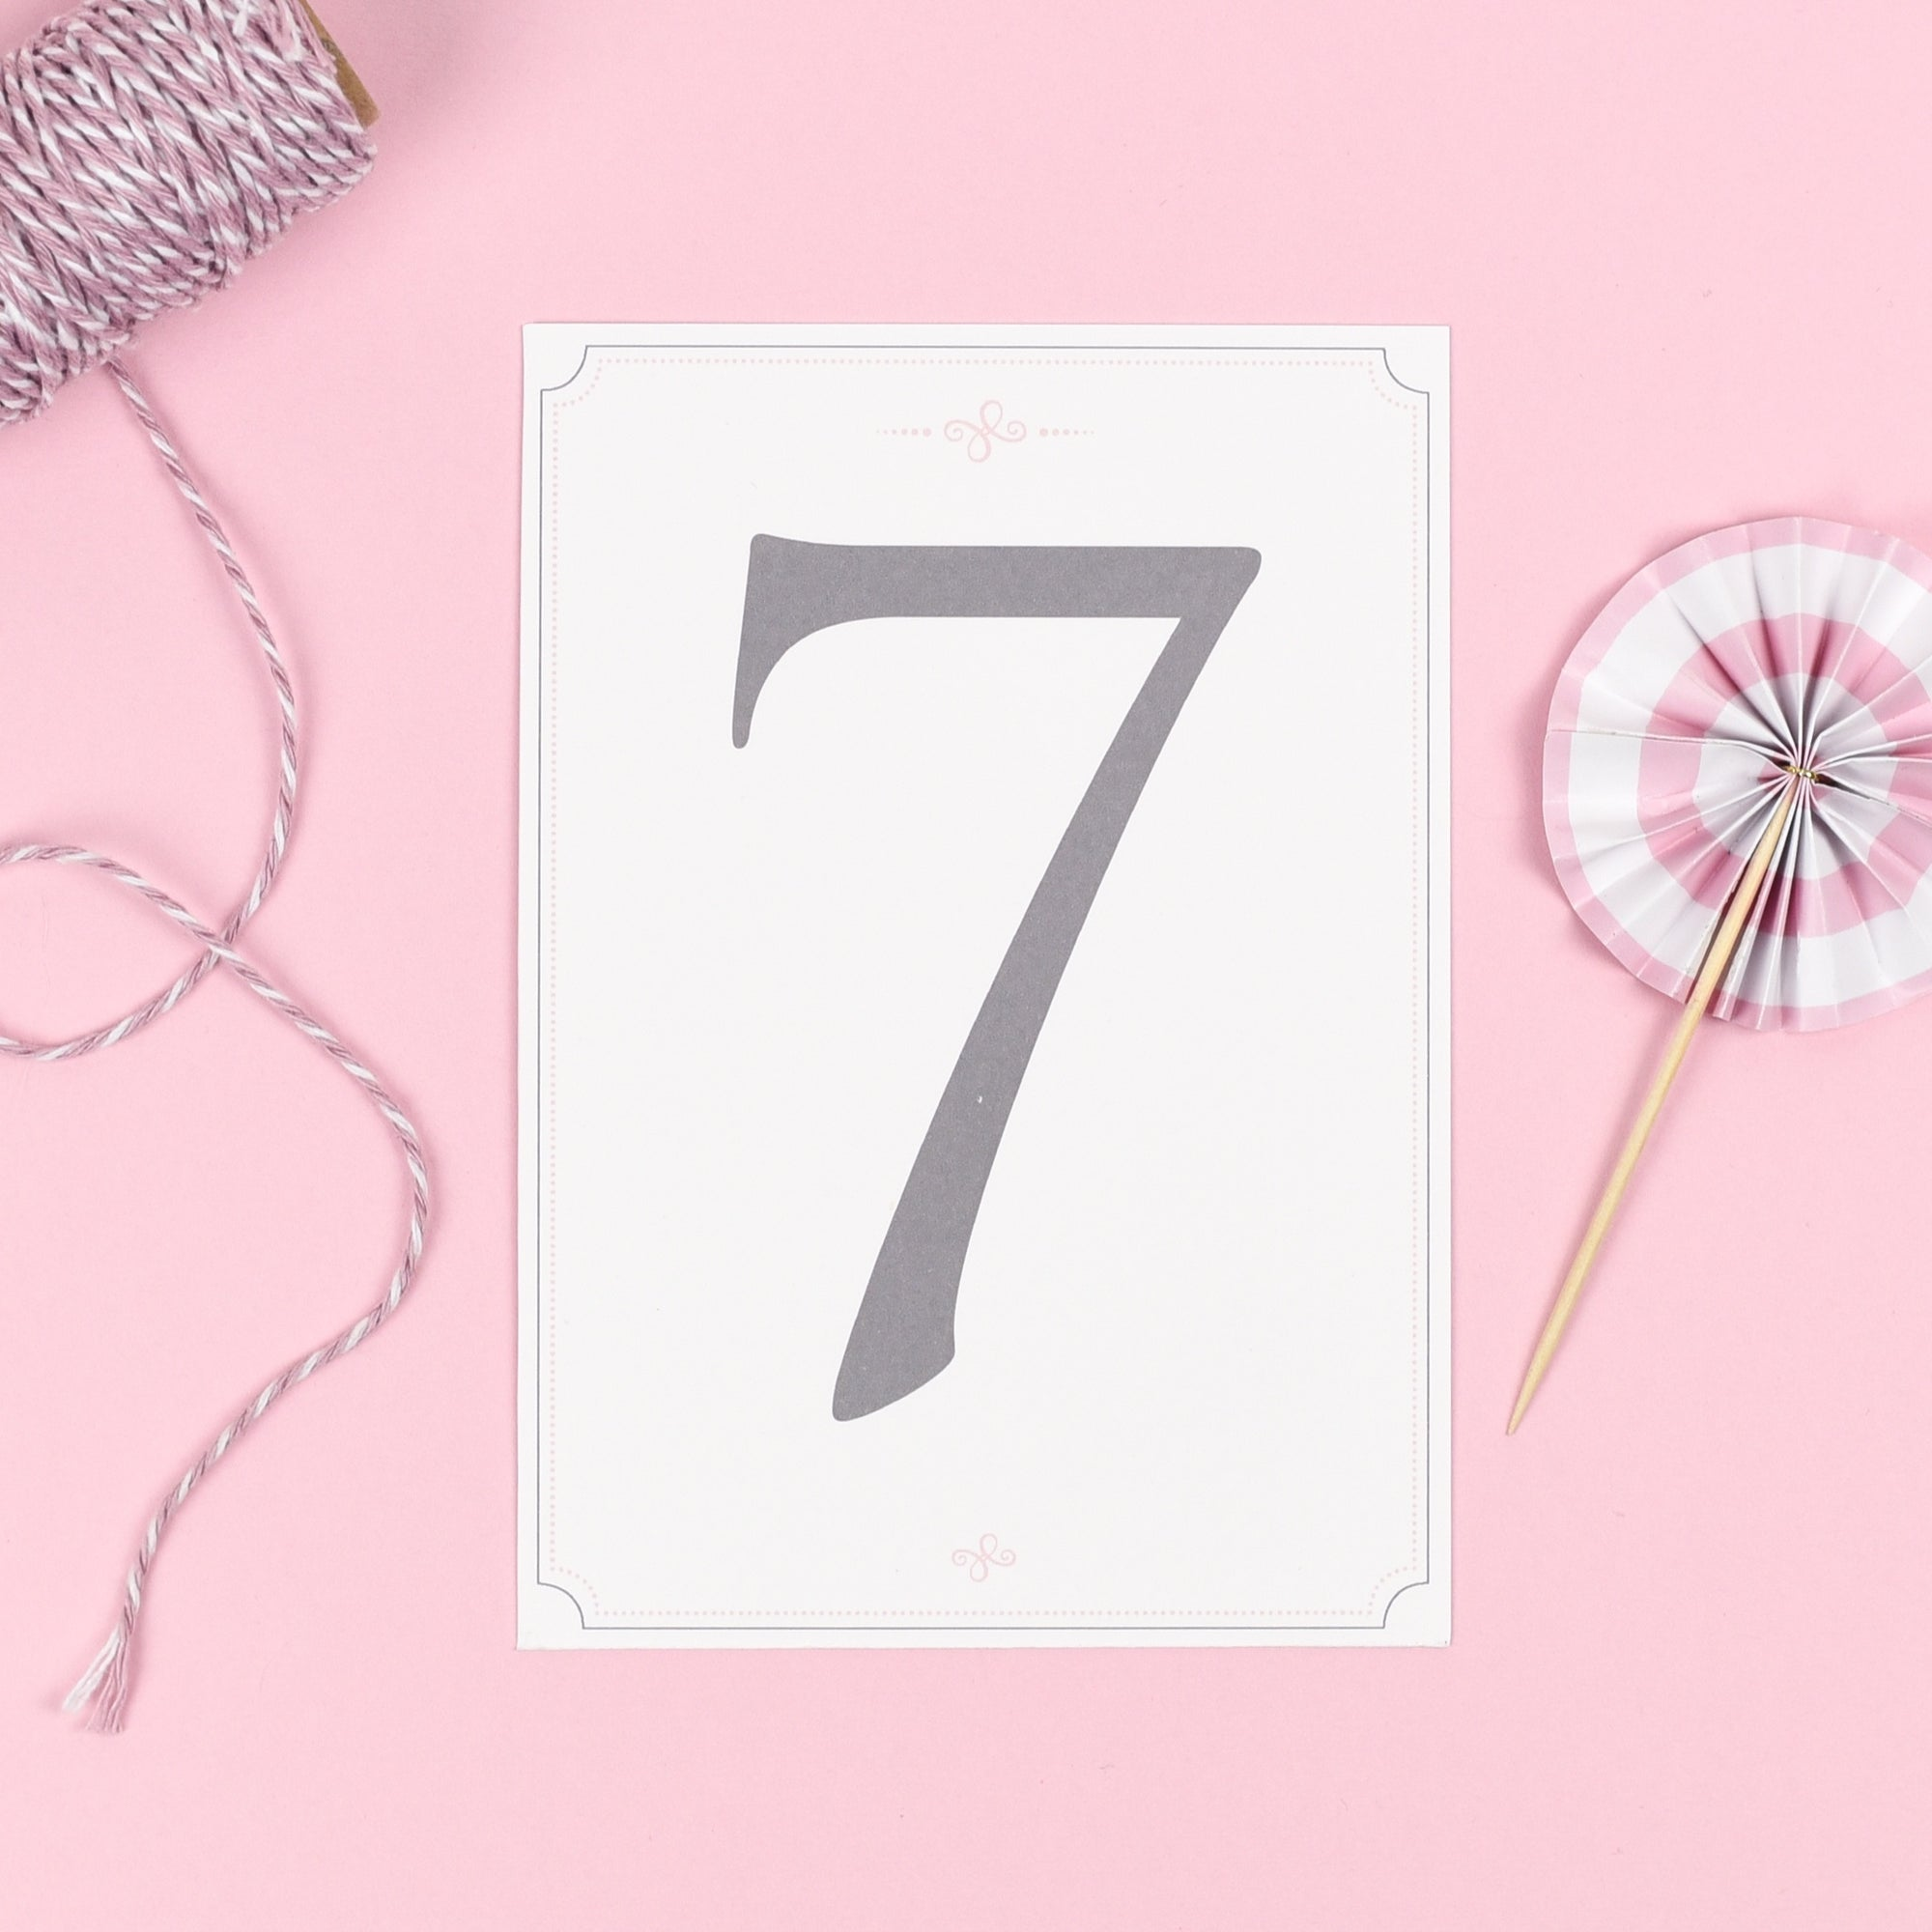 Table Names or Numbers - Erin - Delicate Frame